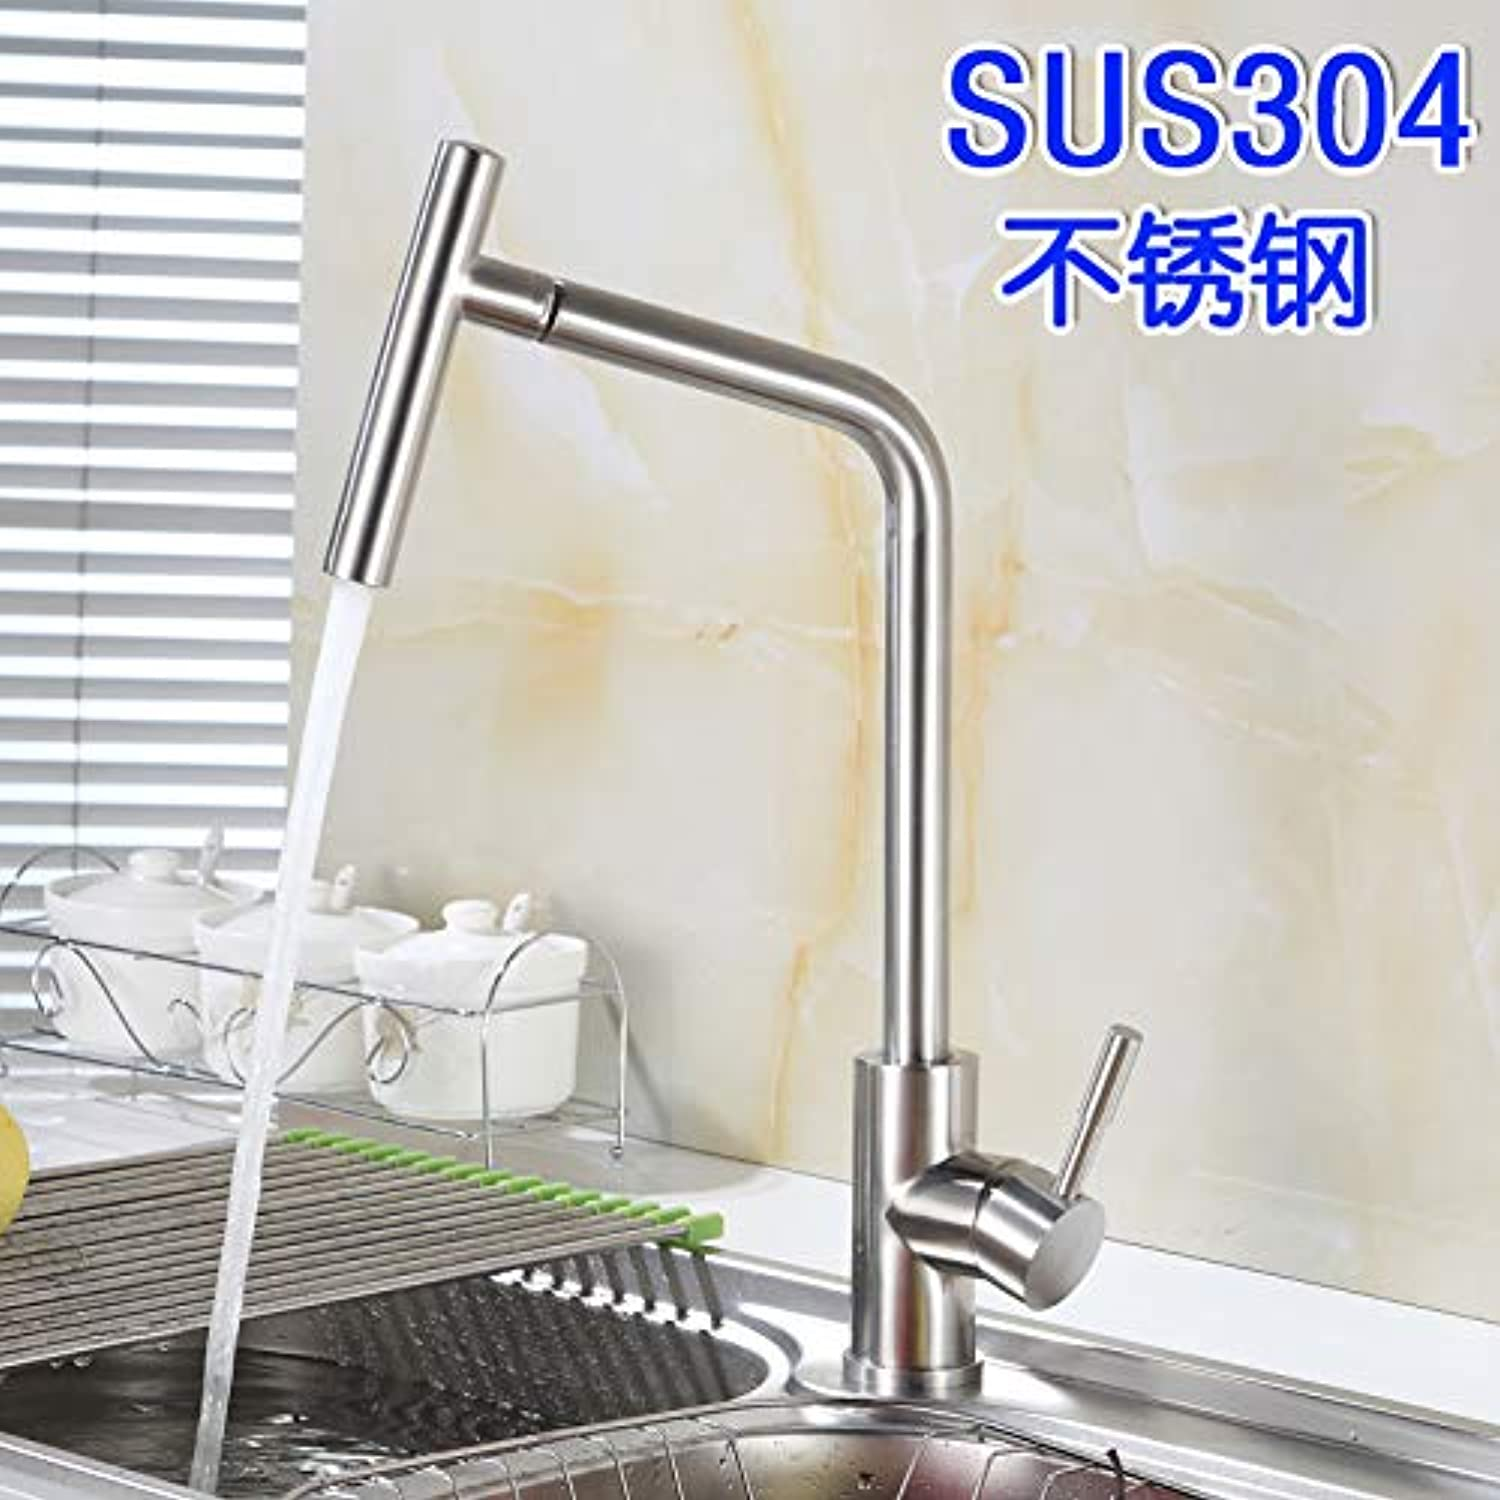 Stainless Steel Faucet Lead-Free Kitchen Sink Hot and Cold Water Faucet Can Be redated Inside The Shell Welding 100Mm Height 3.1 Kg